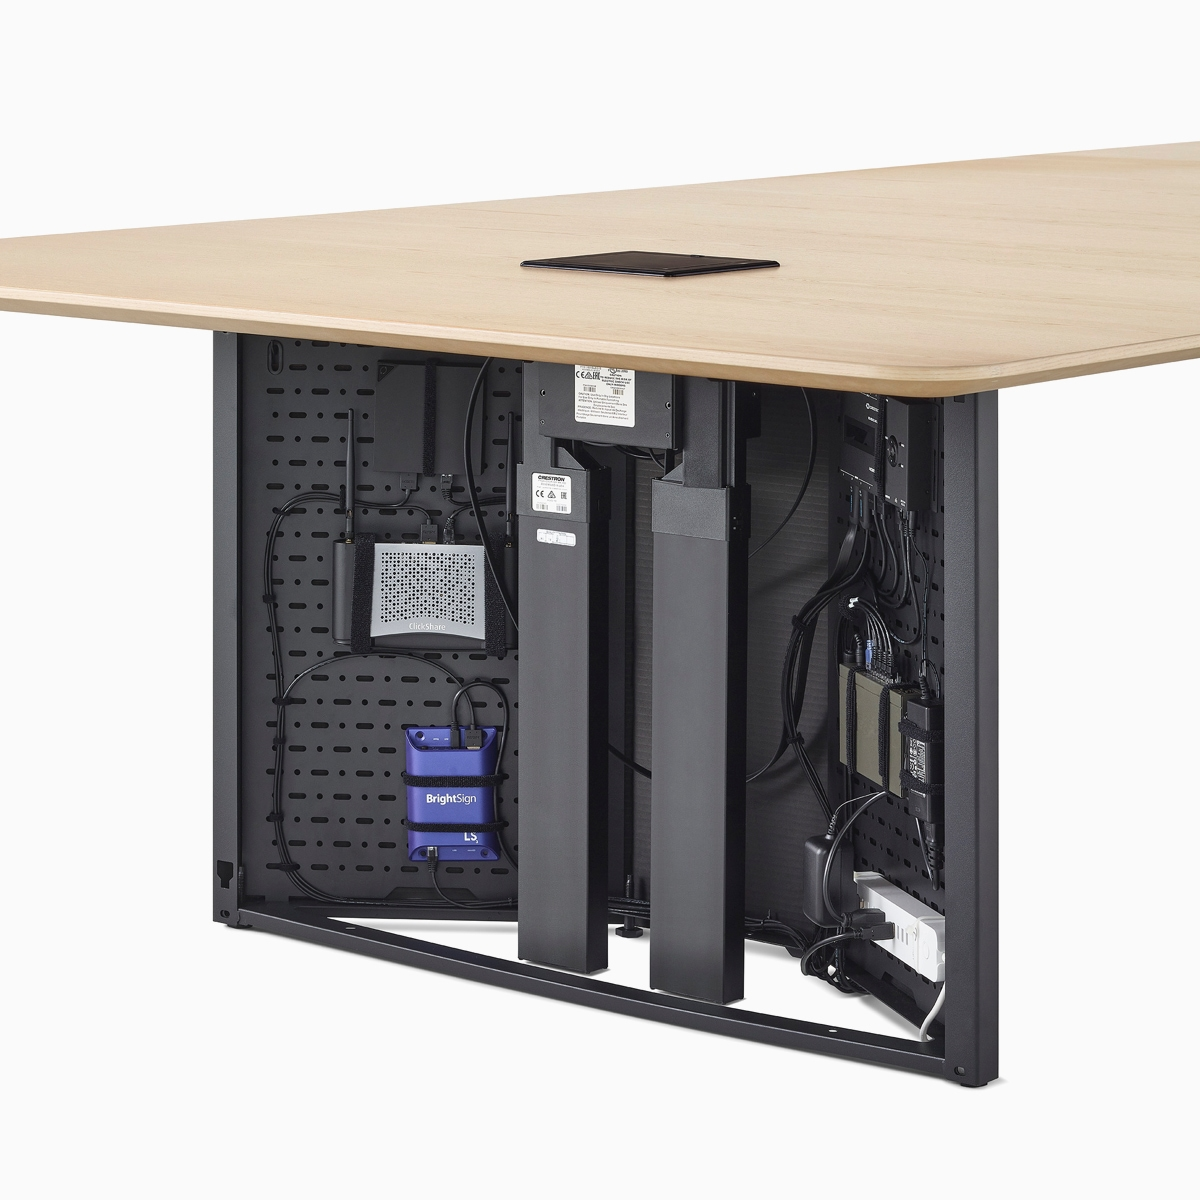 A close-up view of a Headway conference table's open cabinet base filled with technology components.